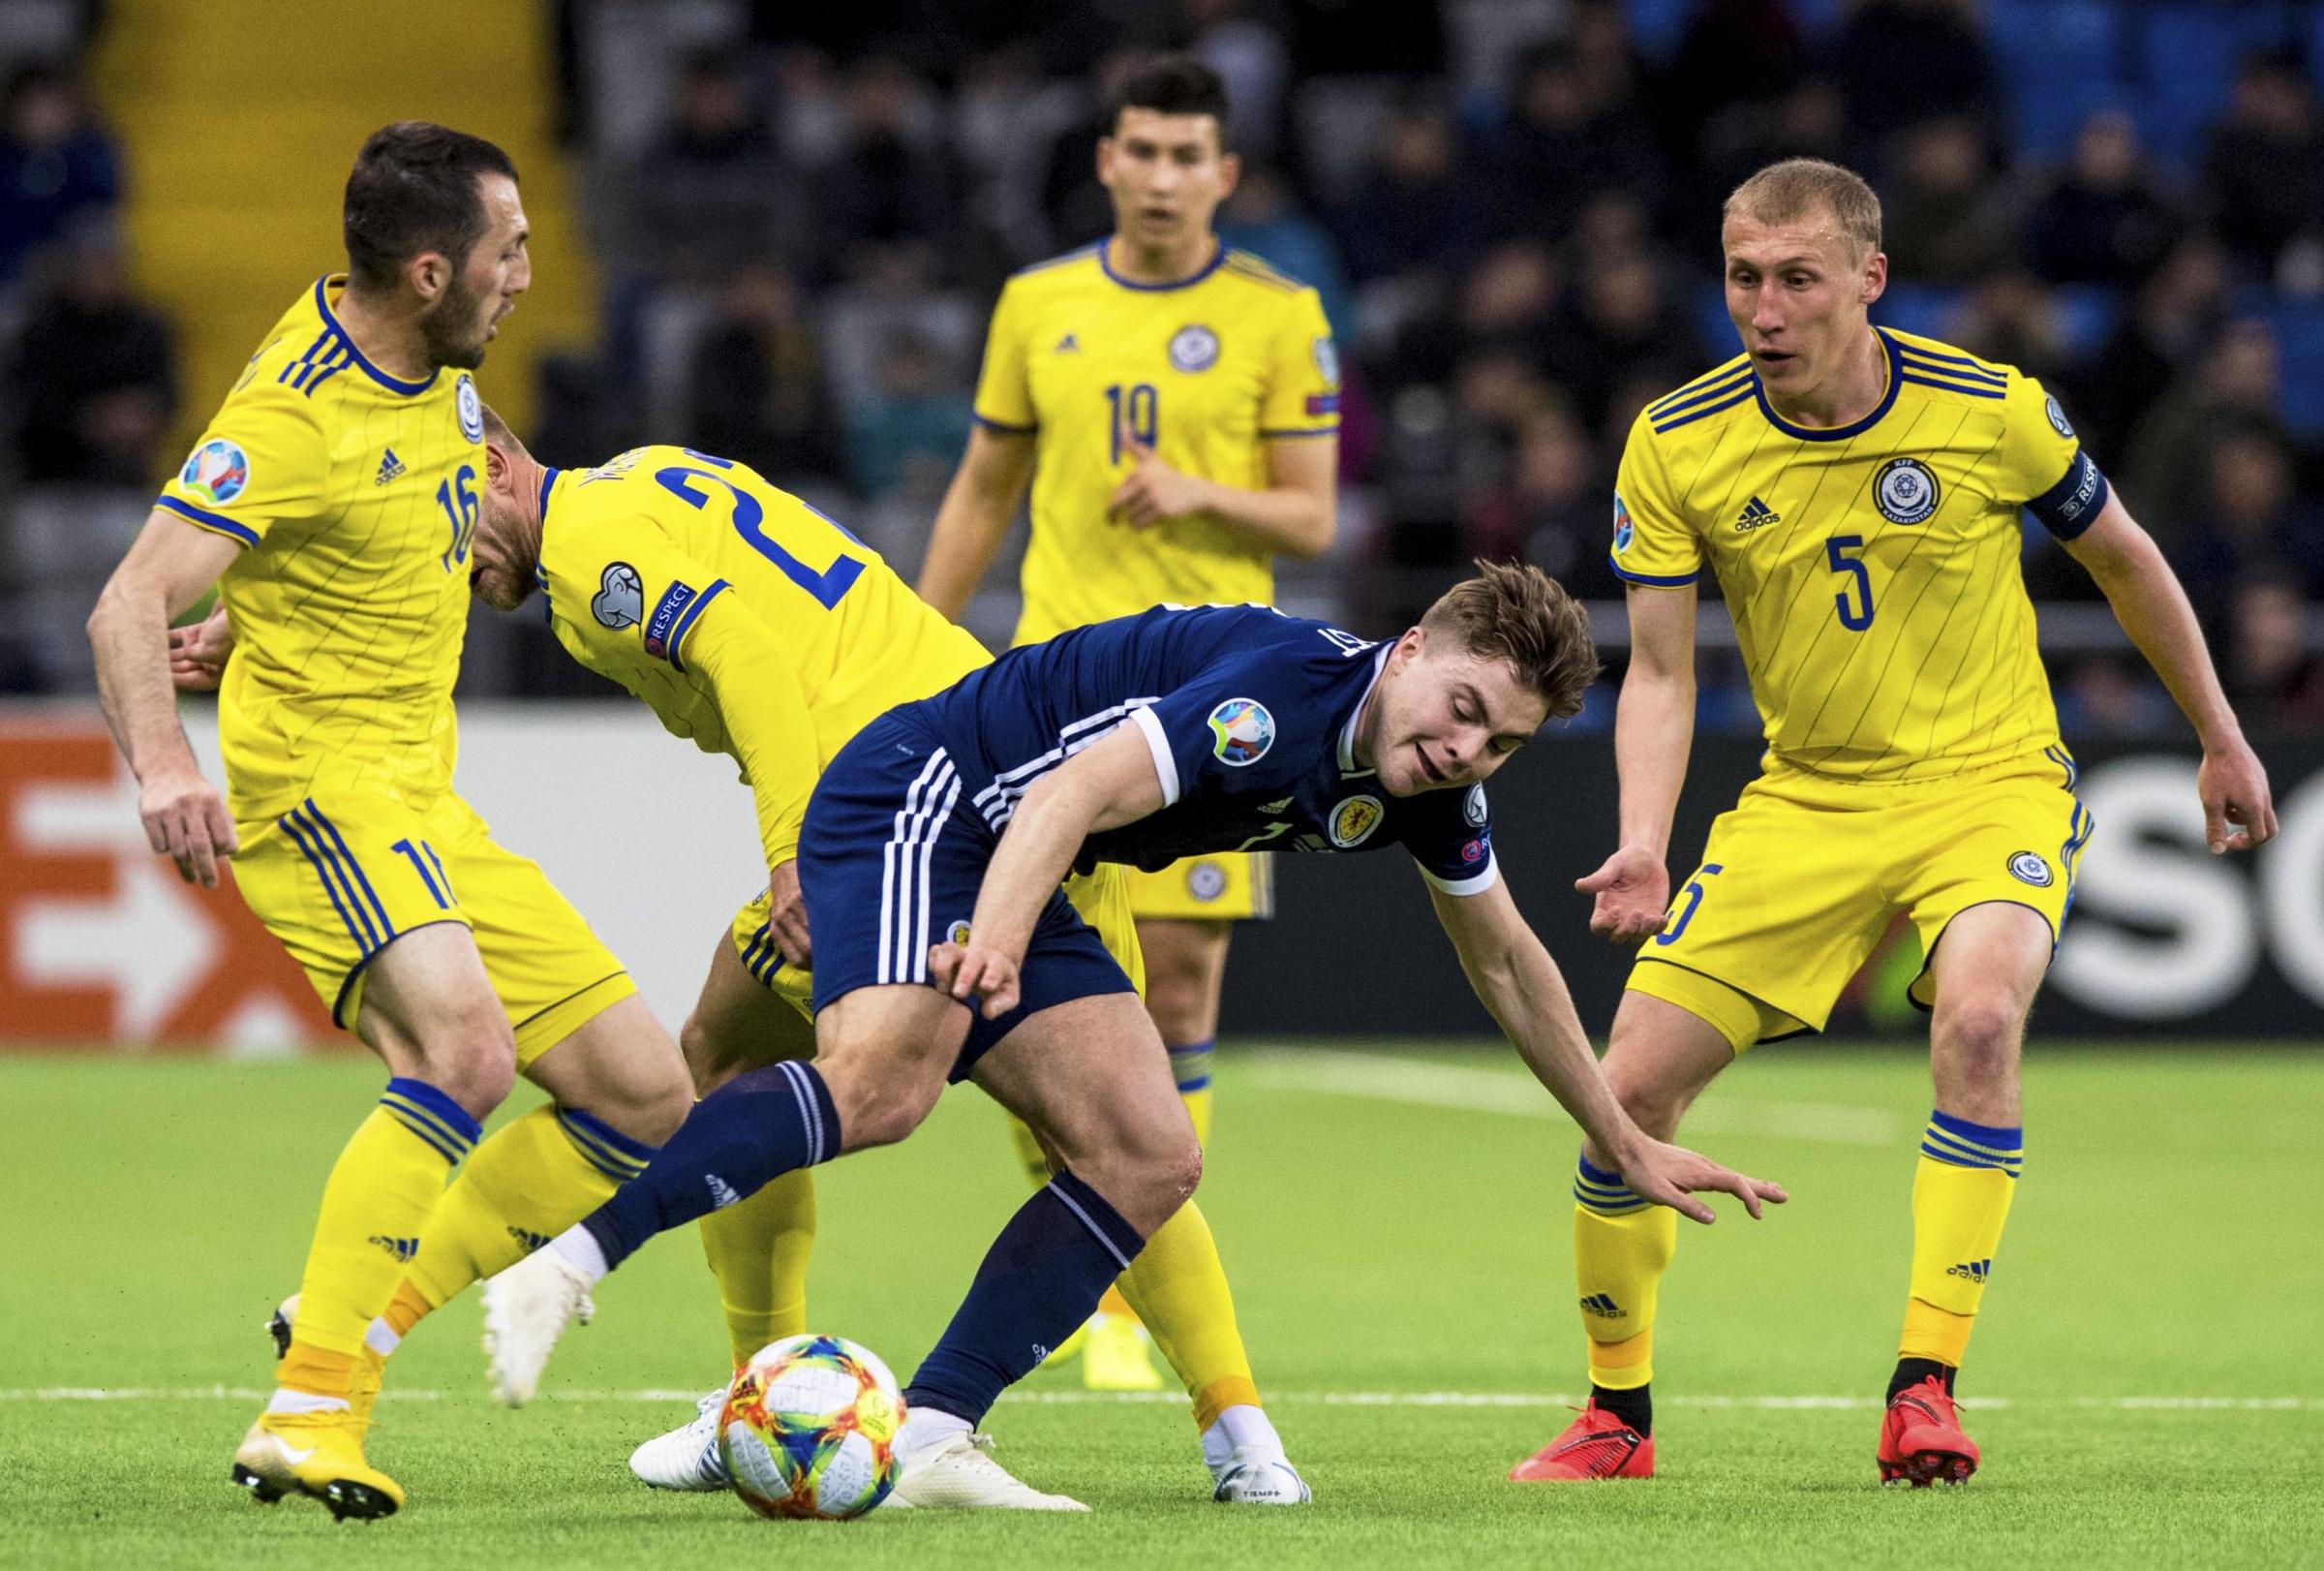 James Forrest: Celtic qualified three times after Astana Arena failures - Scotland can do the same